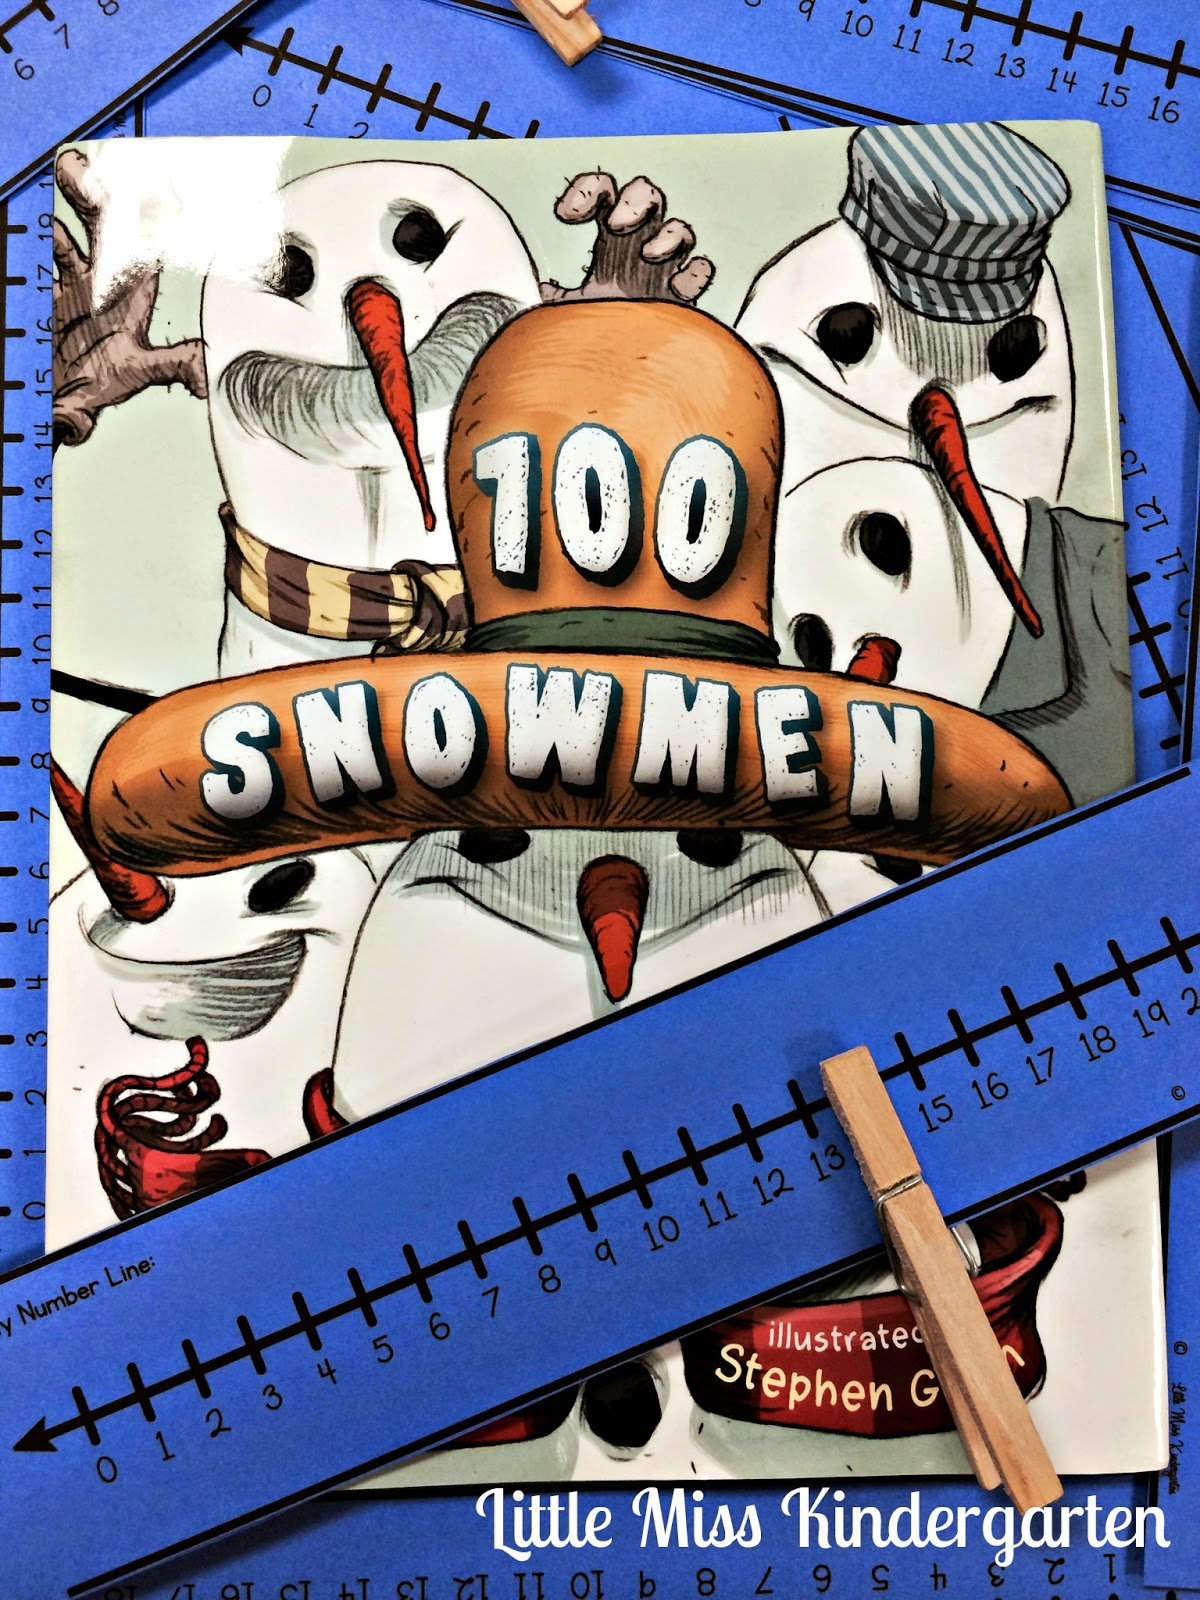 http://littlemisskindergarten.blogspot.com/2015/01/number-talks-with-100-snowmen.html